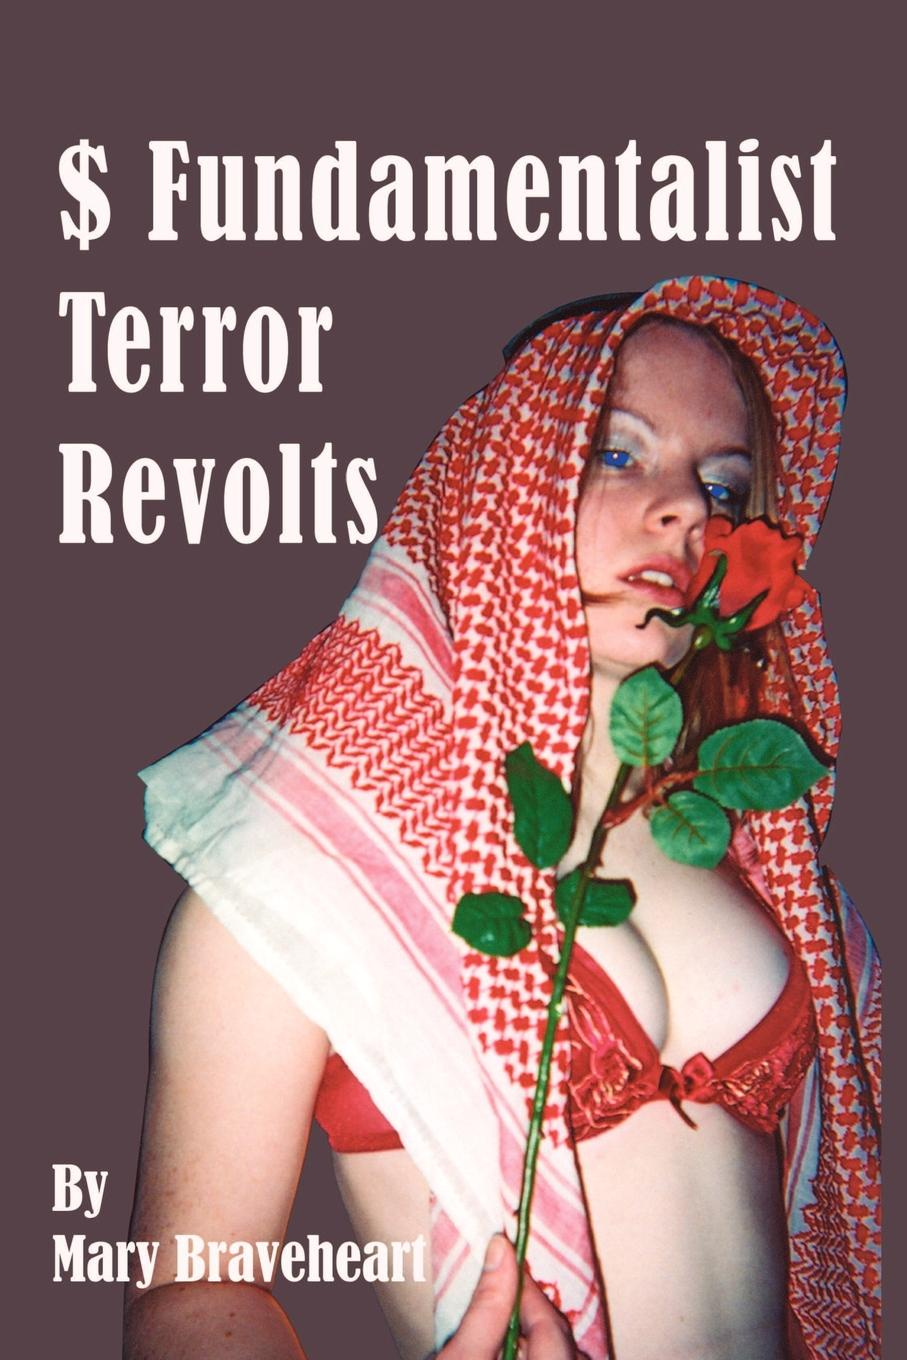 Mary Braveheart . Fundamentalist Terror Revolts. A Novel Inspired by the Murders of an Australian Nurse in Saudi and Pricess Diana Paris